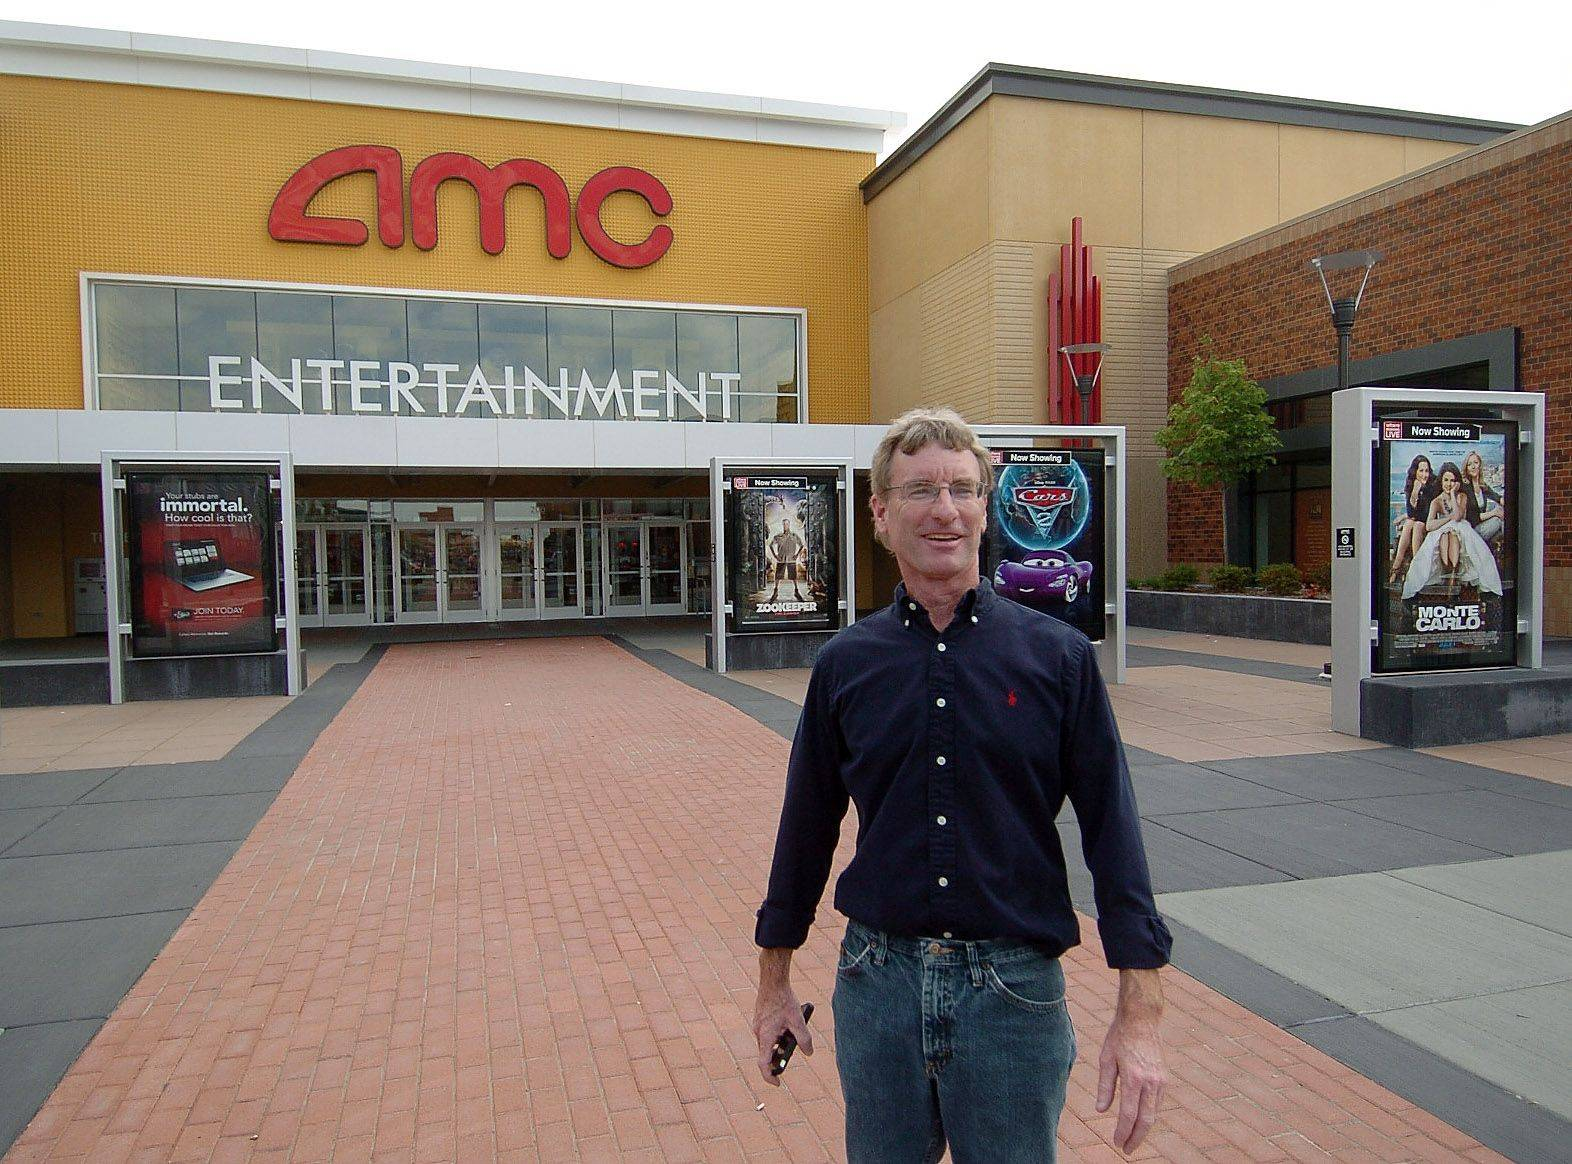 James Conroy, director of Randhurst Village development, in front of the AMC theaters. Even the concessions are new at the theaters, allowing customers to make selections and check out, including wine and beer from a theater bar, and a Coca-Cola Freestyle machine, which offers 106 possible flavors of Coke.